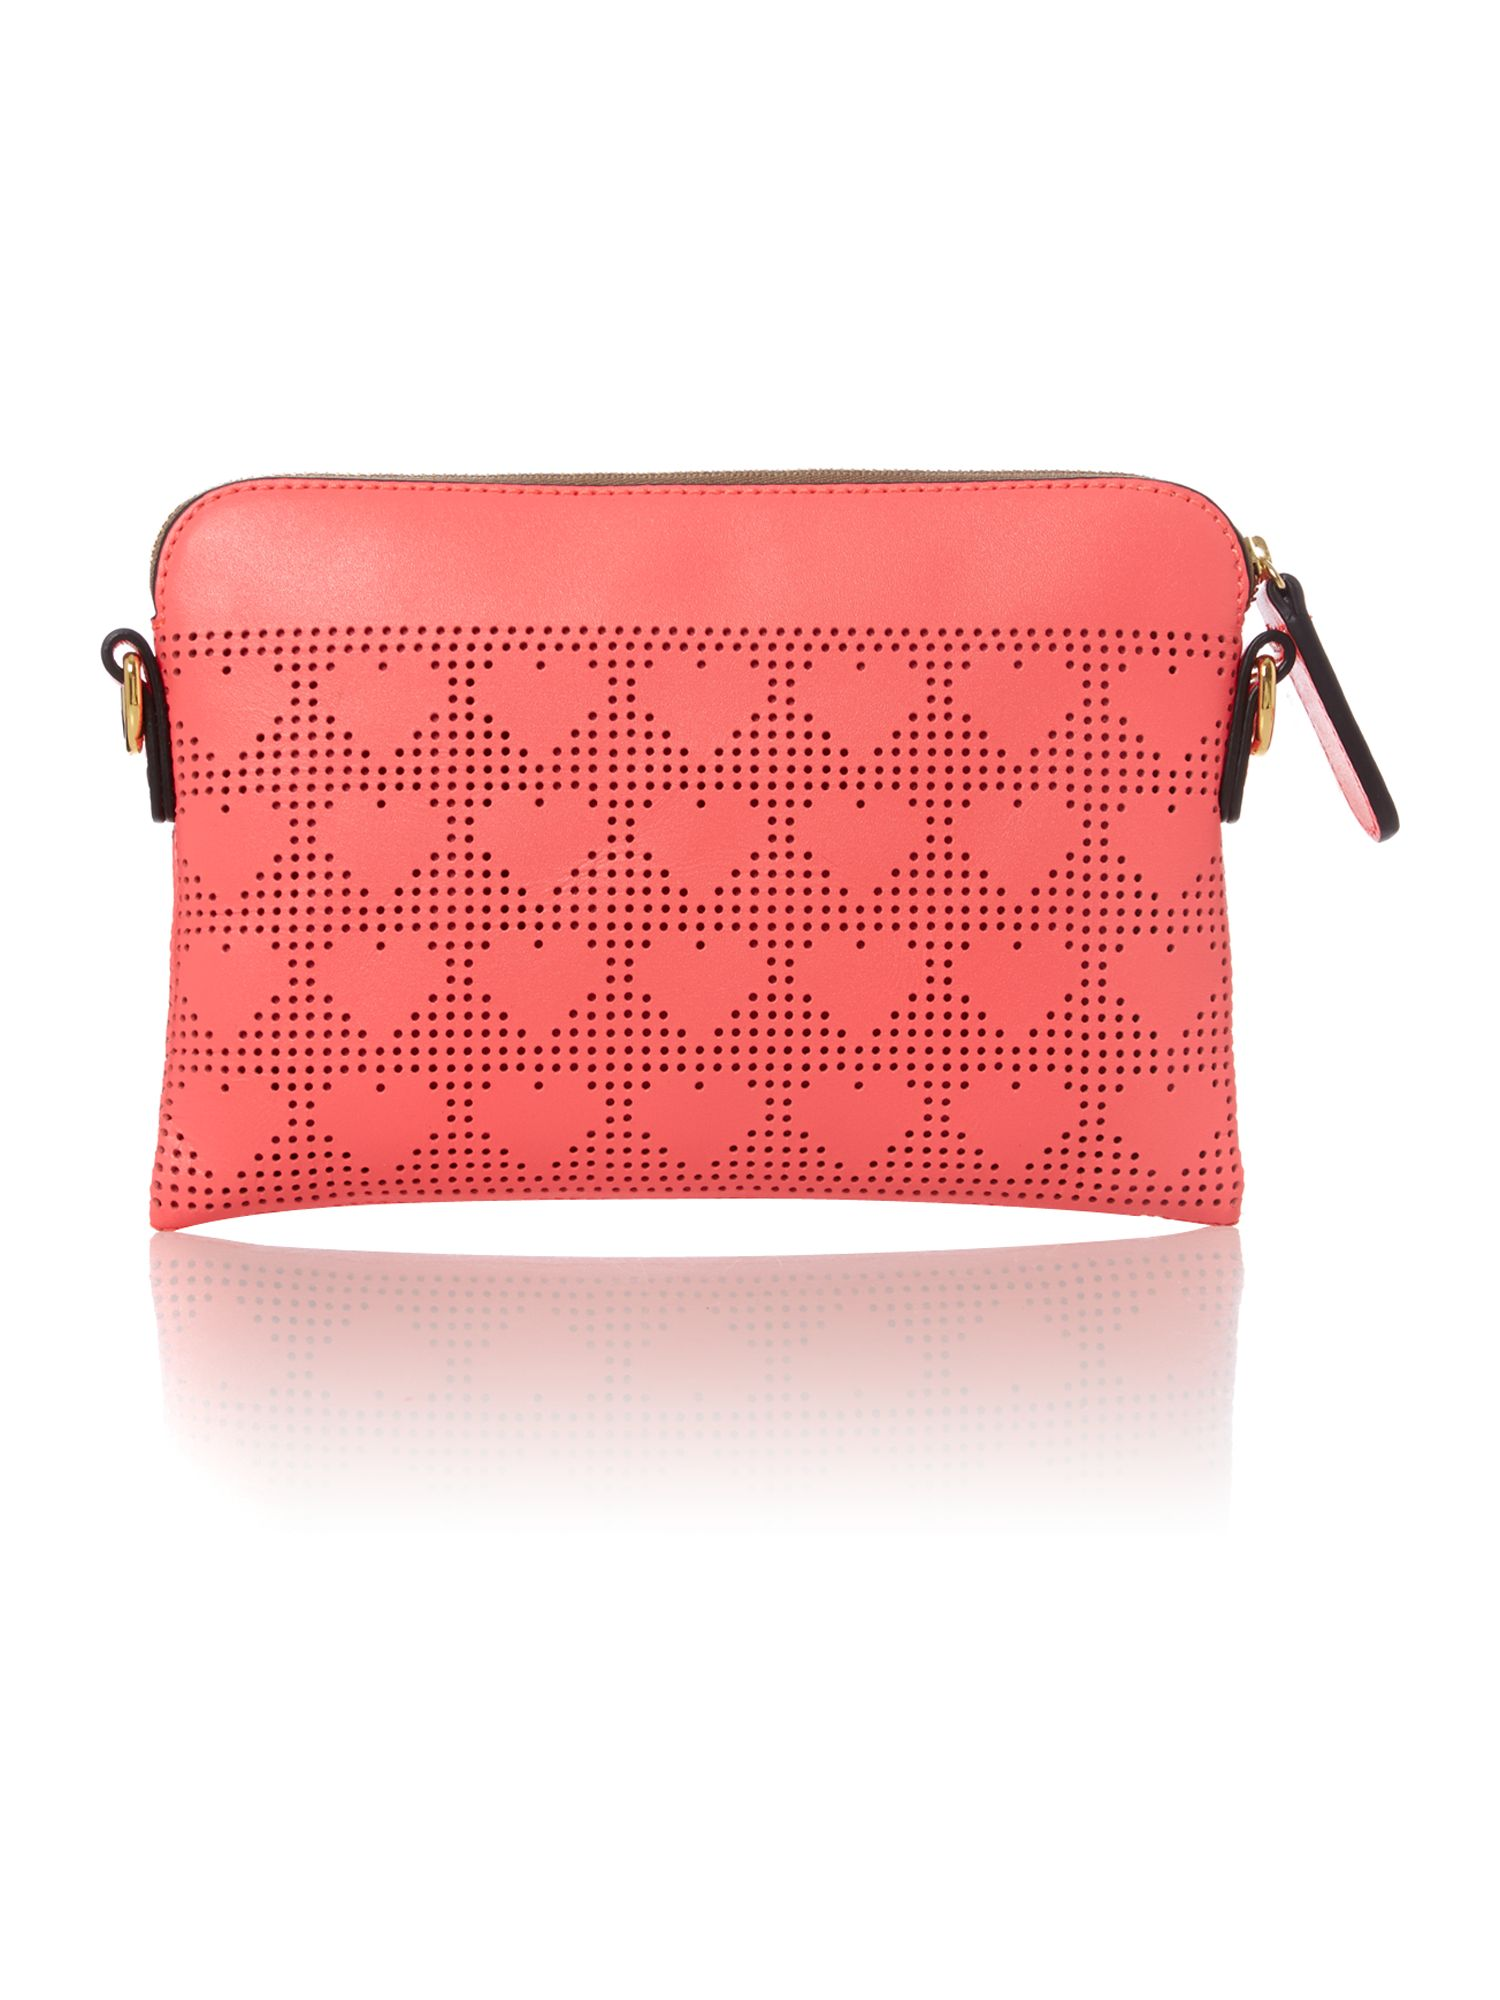 Punch love heart mini pink cross body bag